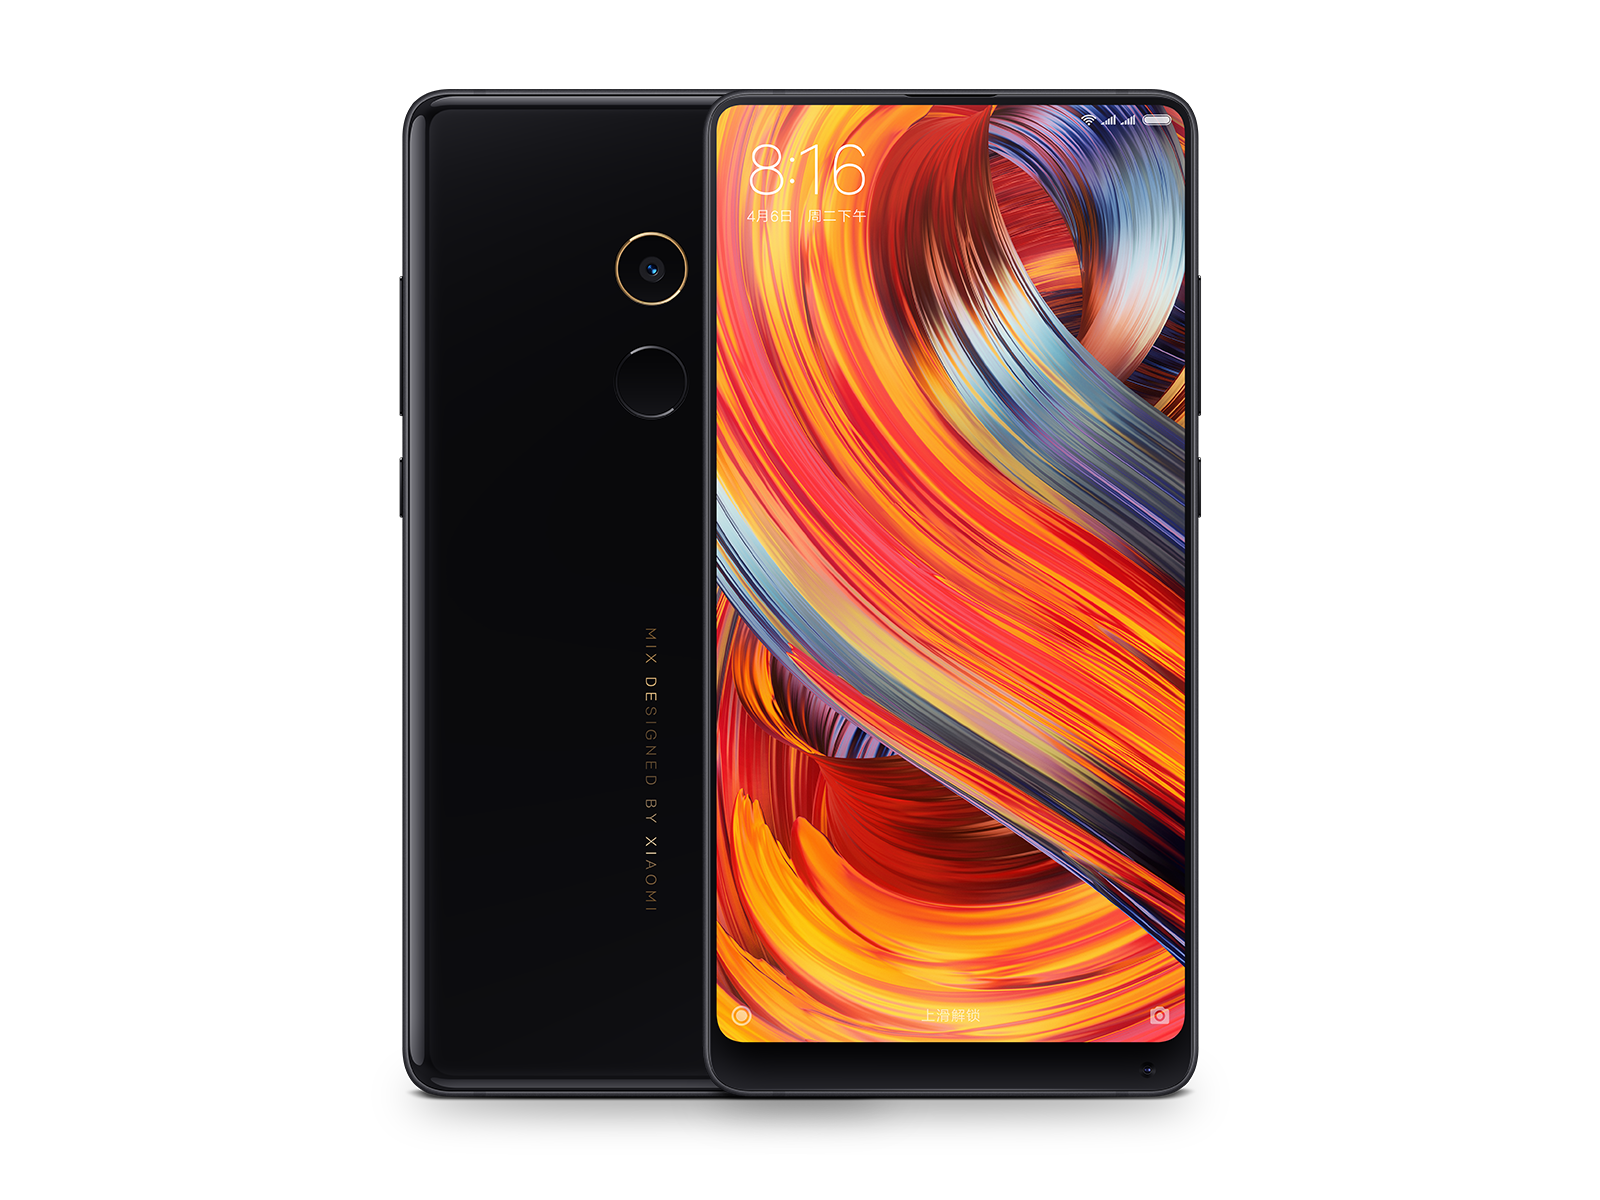 Xiaomi's Mi Mix 2 is a bezel-free, Snapdragon 835-powered handset that starts at $500